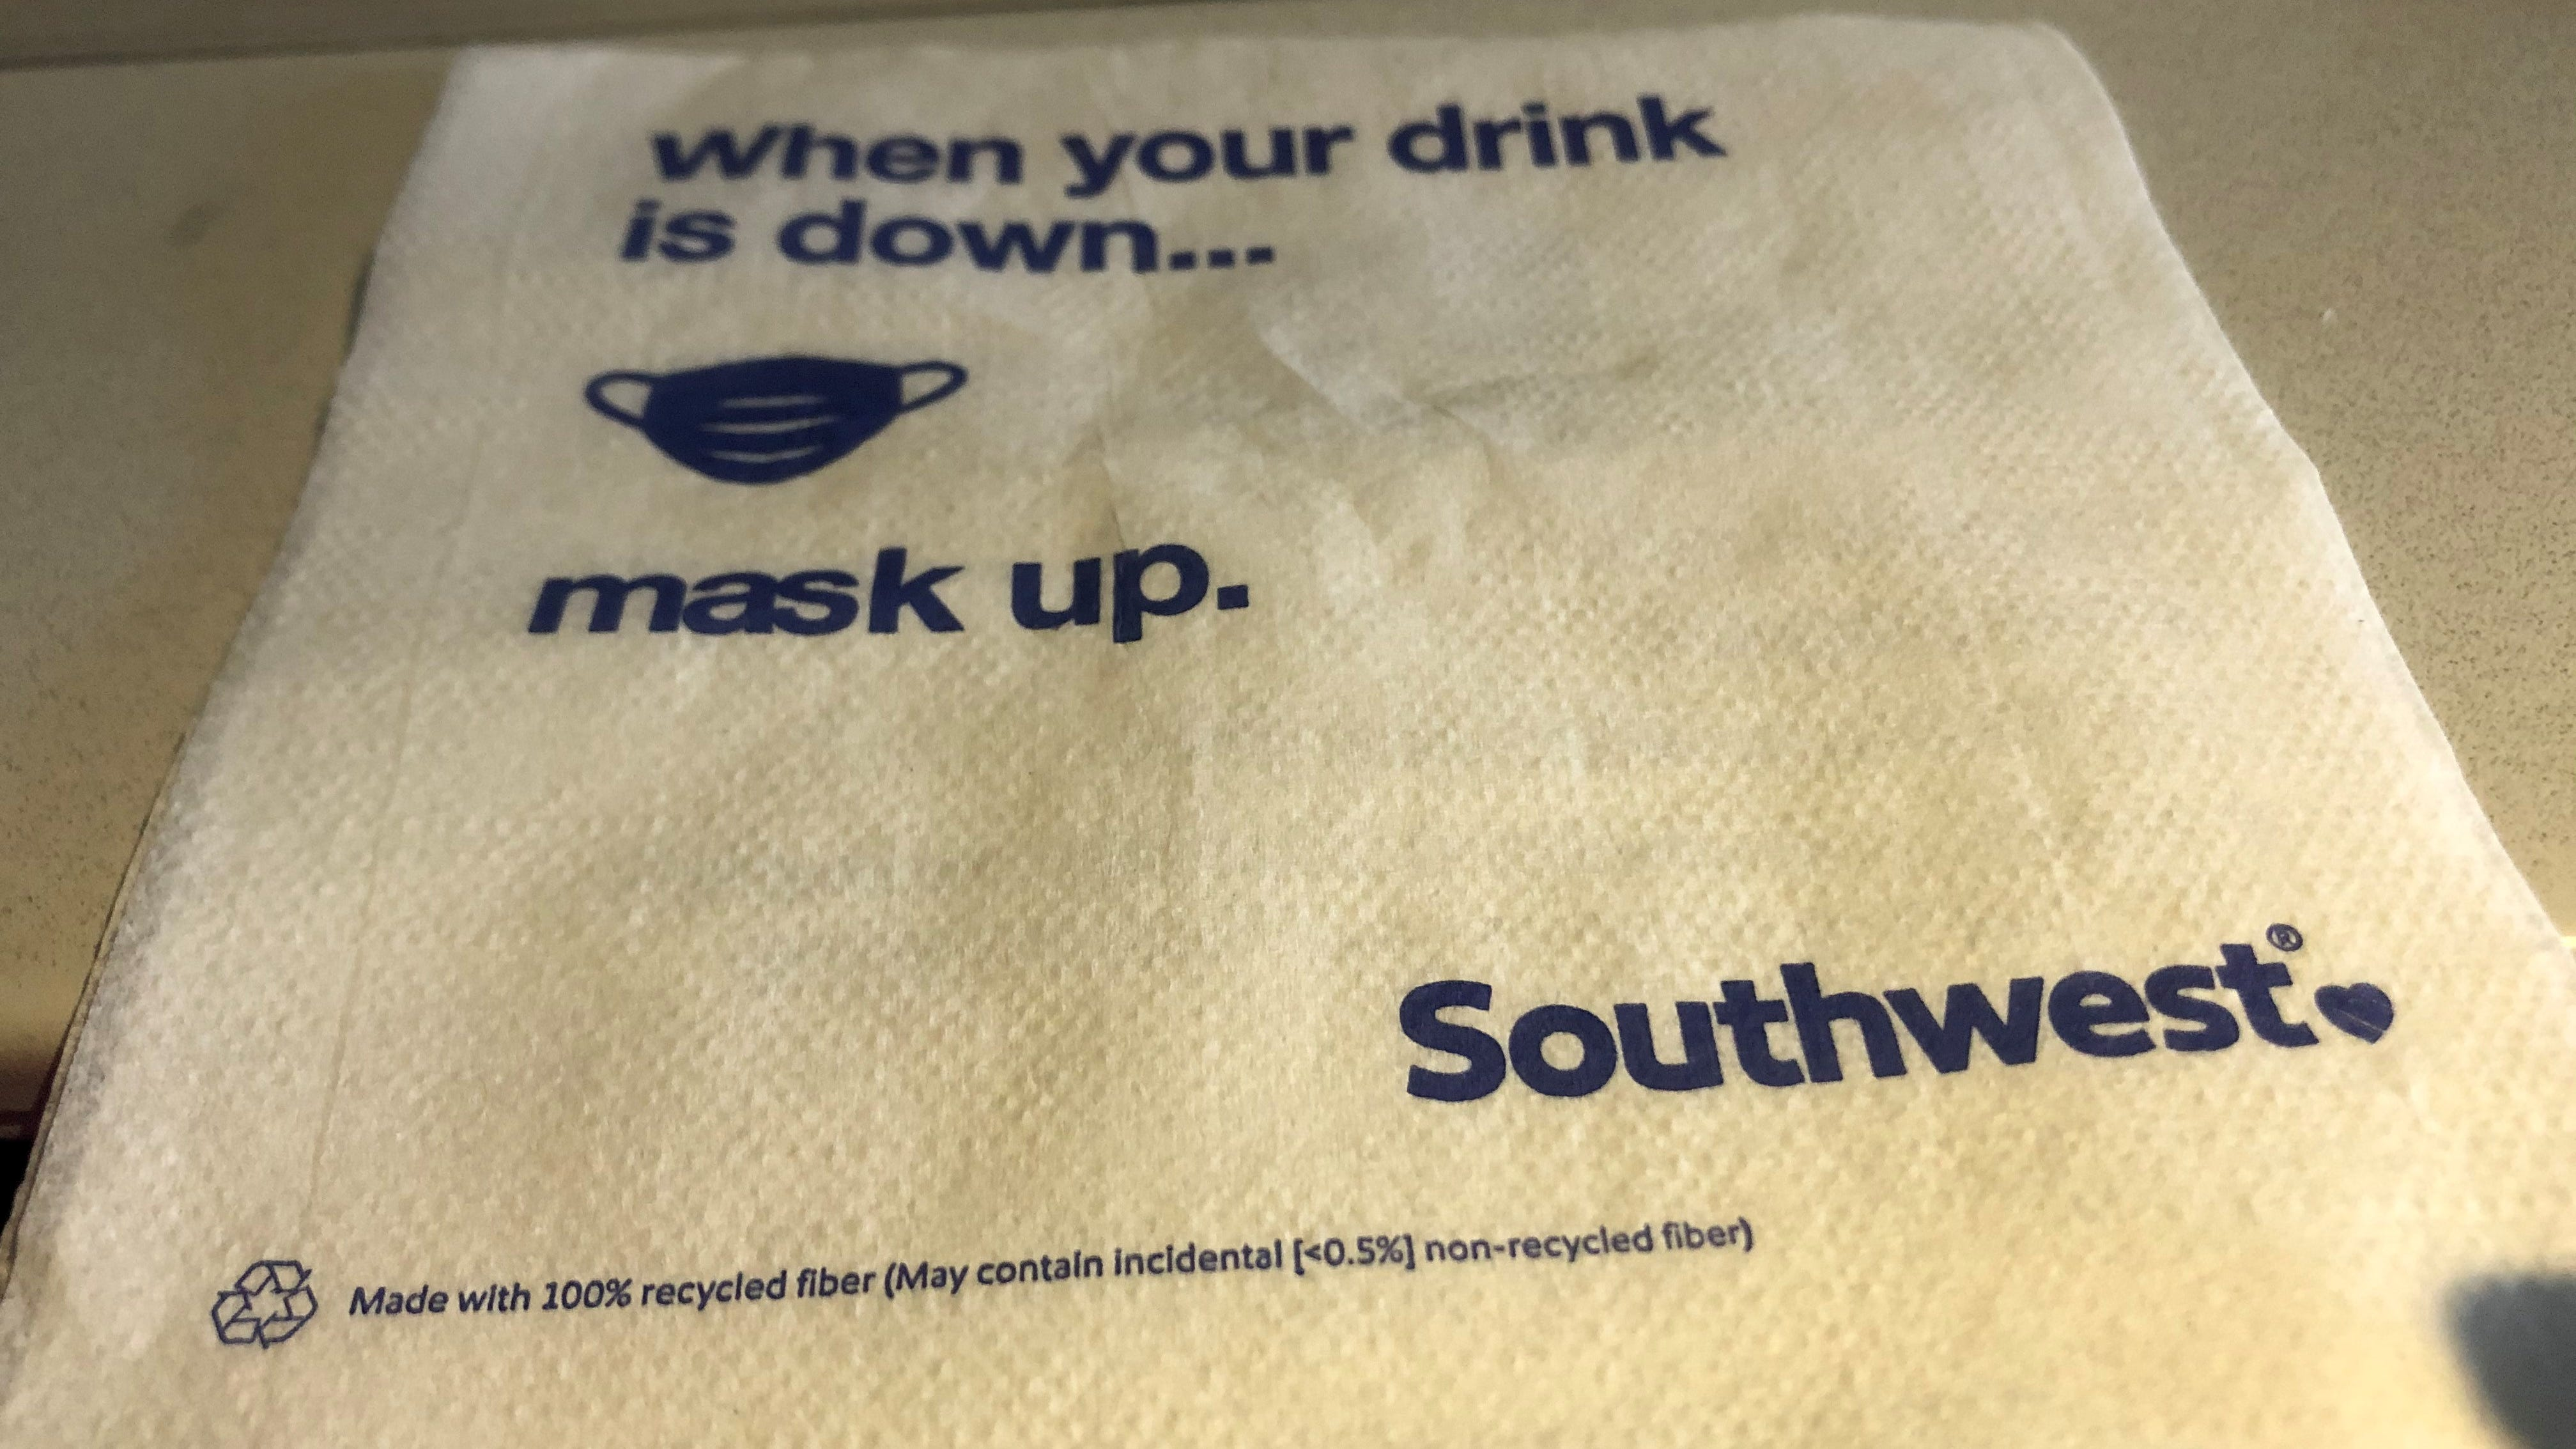 Southwest Airlines and other airlines repeatedly remind passengers to keep their masks on during the flight except when briefly eating or drinking.